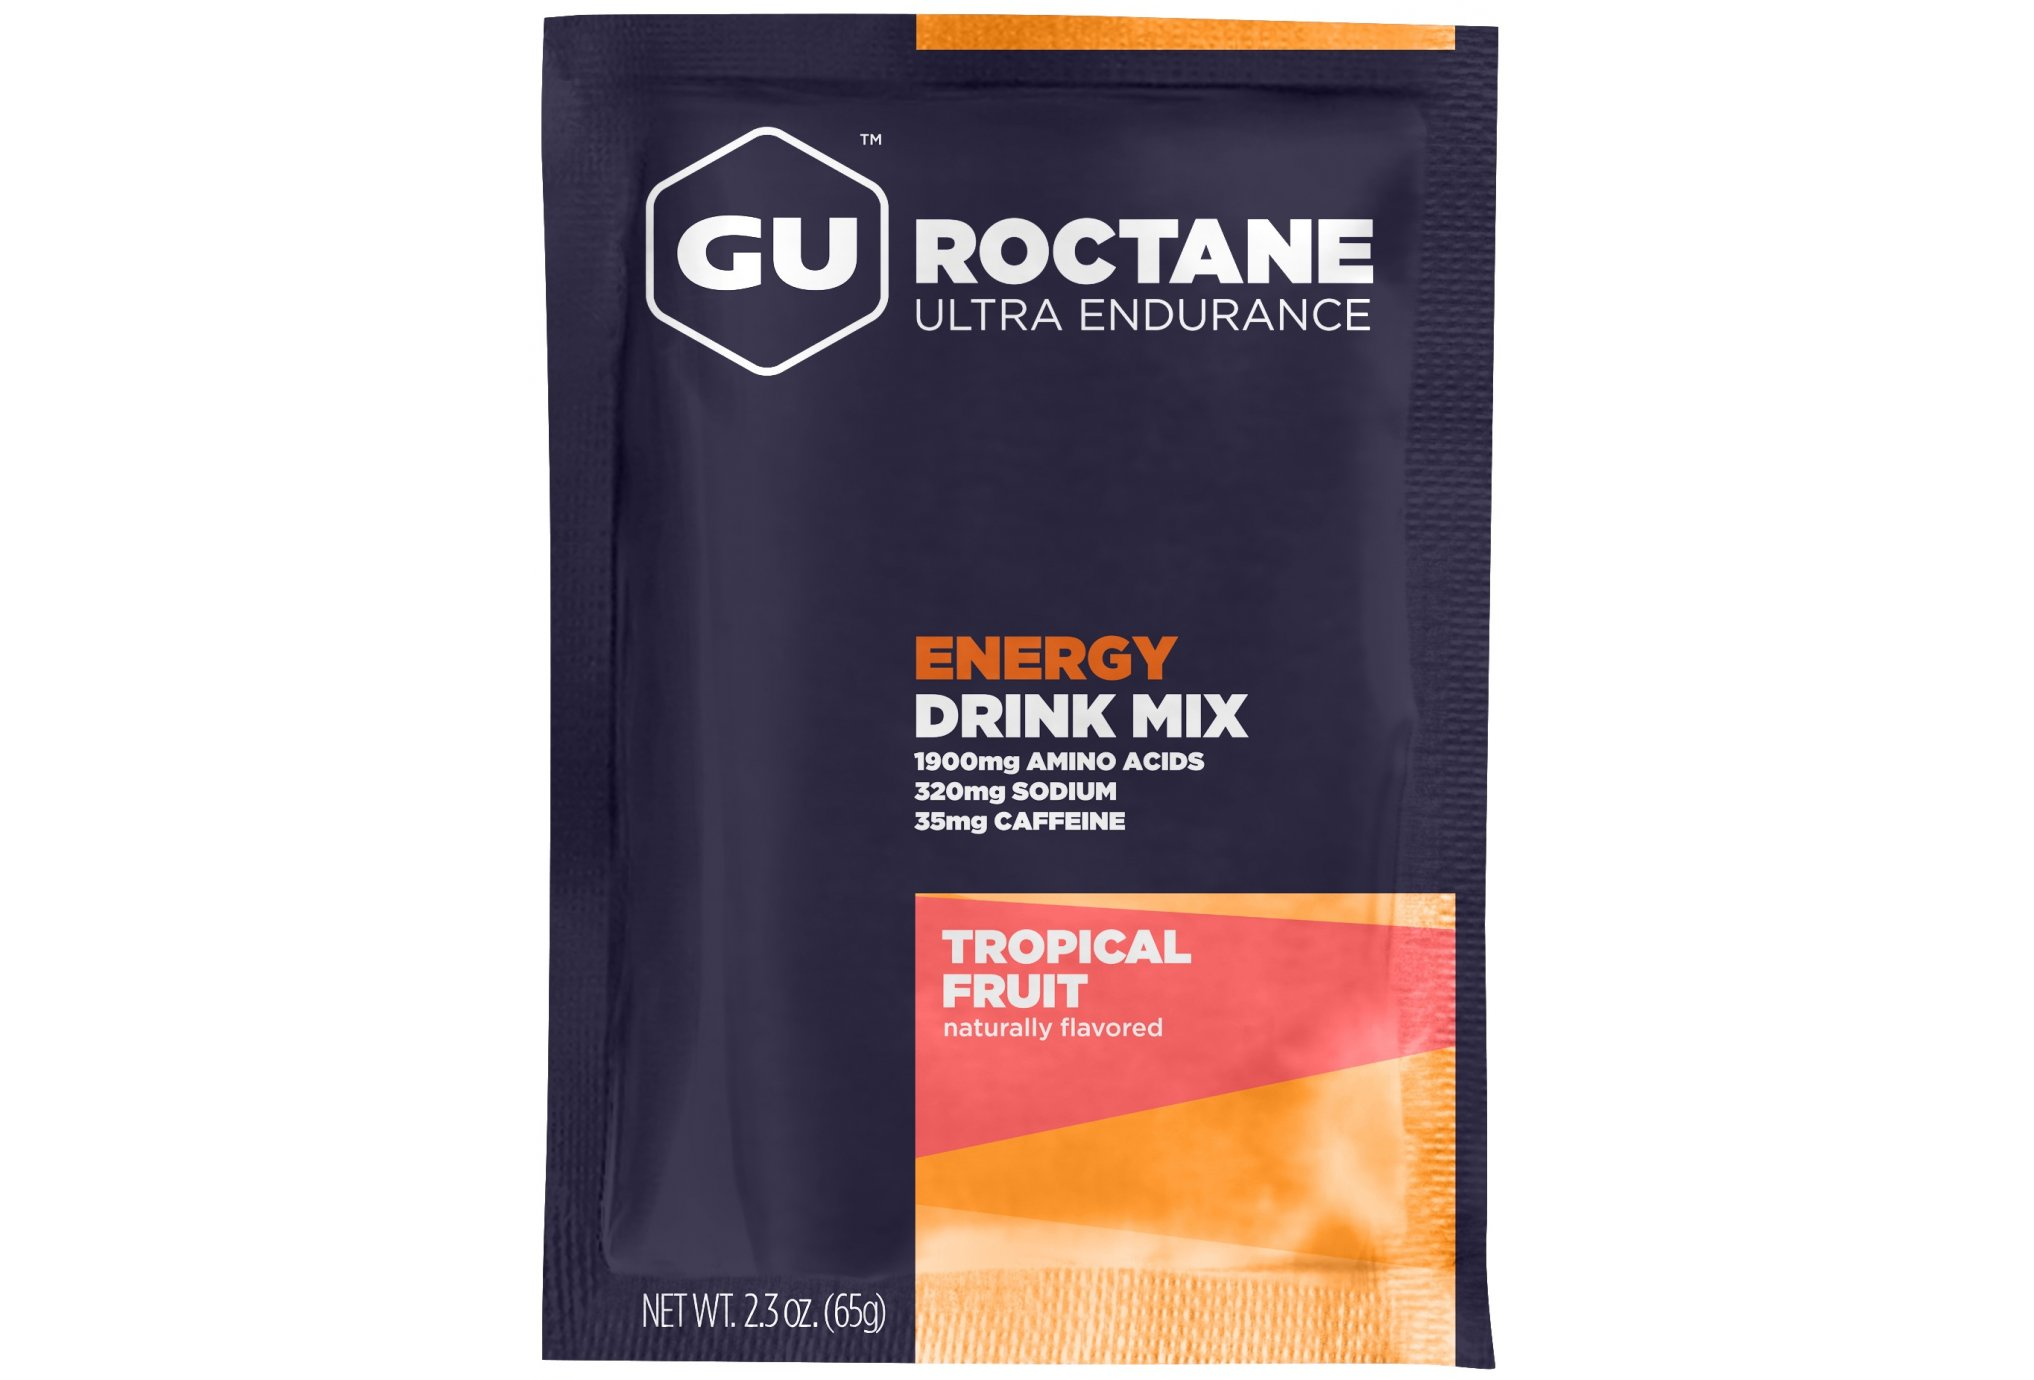 GU Boisson Roctane Ultra Endurance - Fruit tropical Diététique Boissons